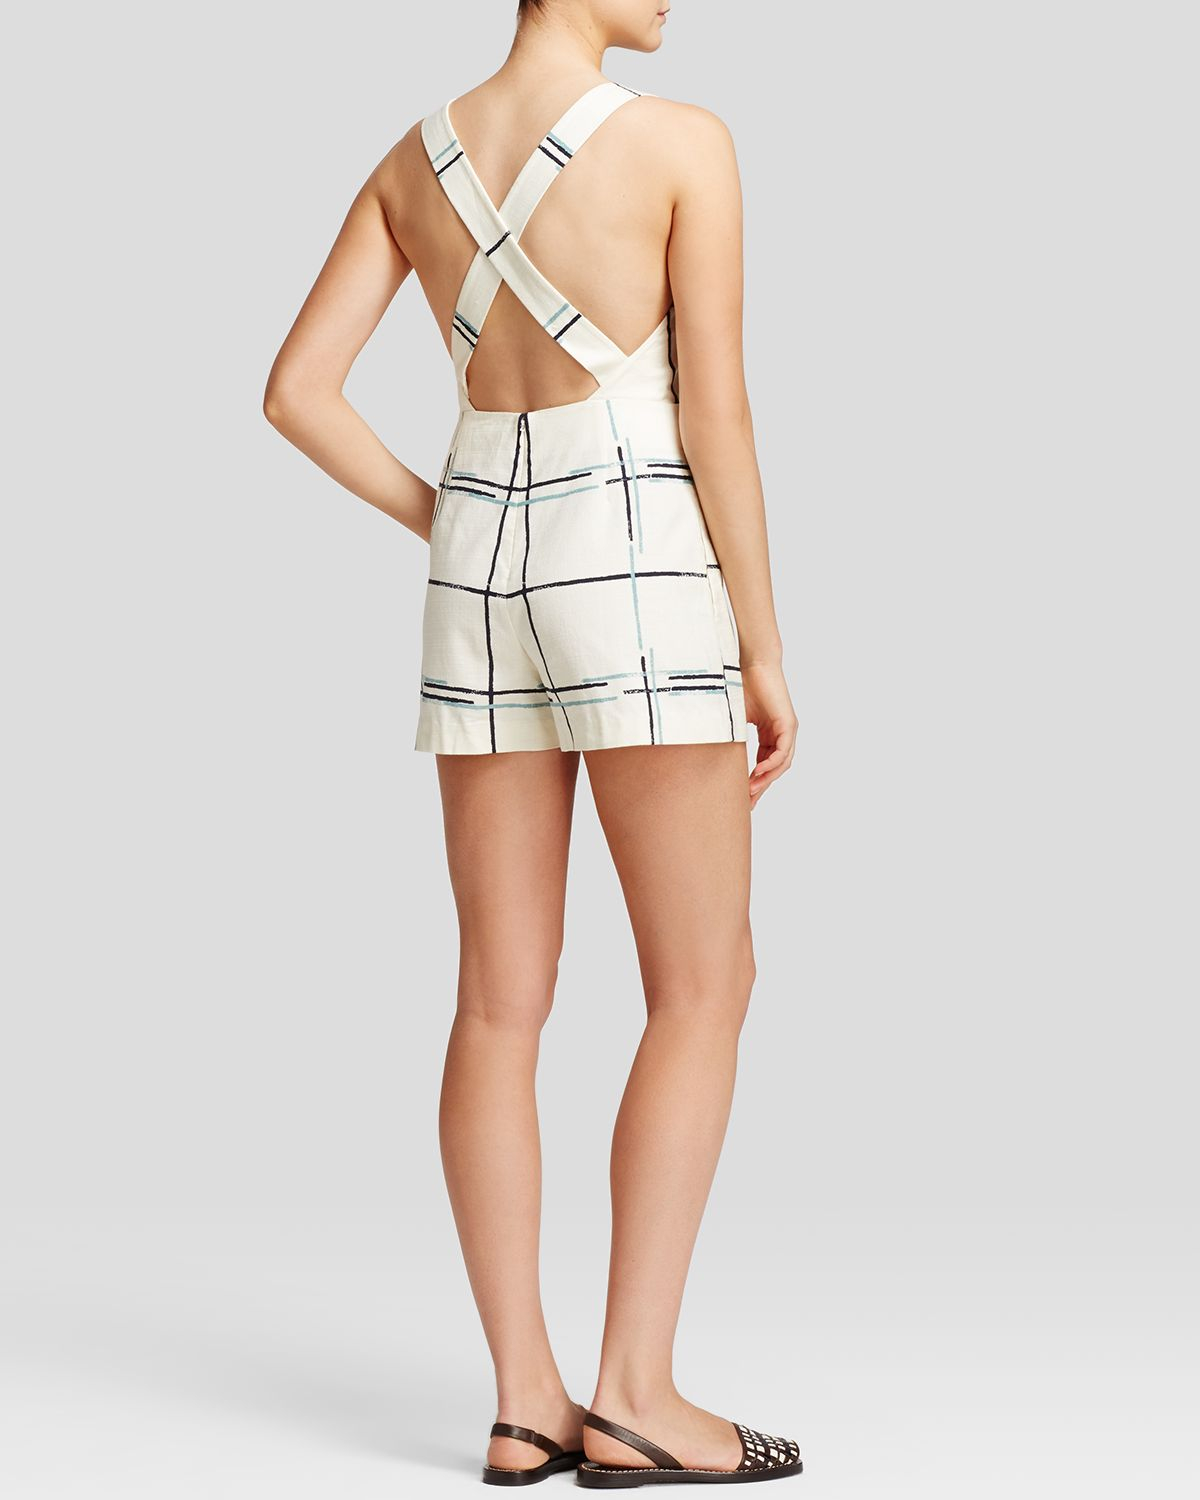 d77f75324c0d Lyst - Tory Burch Grid Print Romper in White